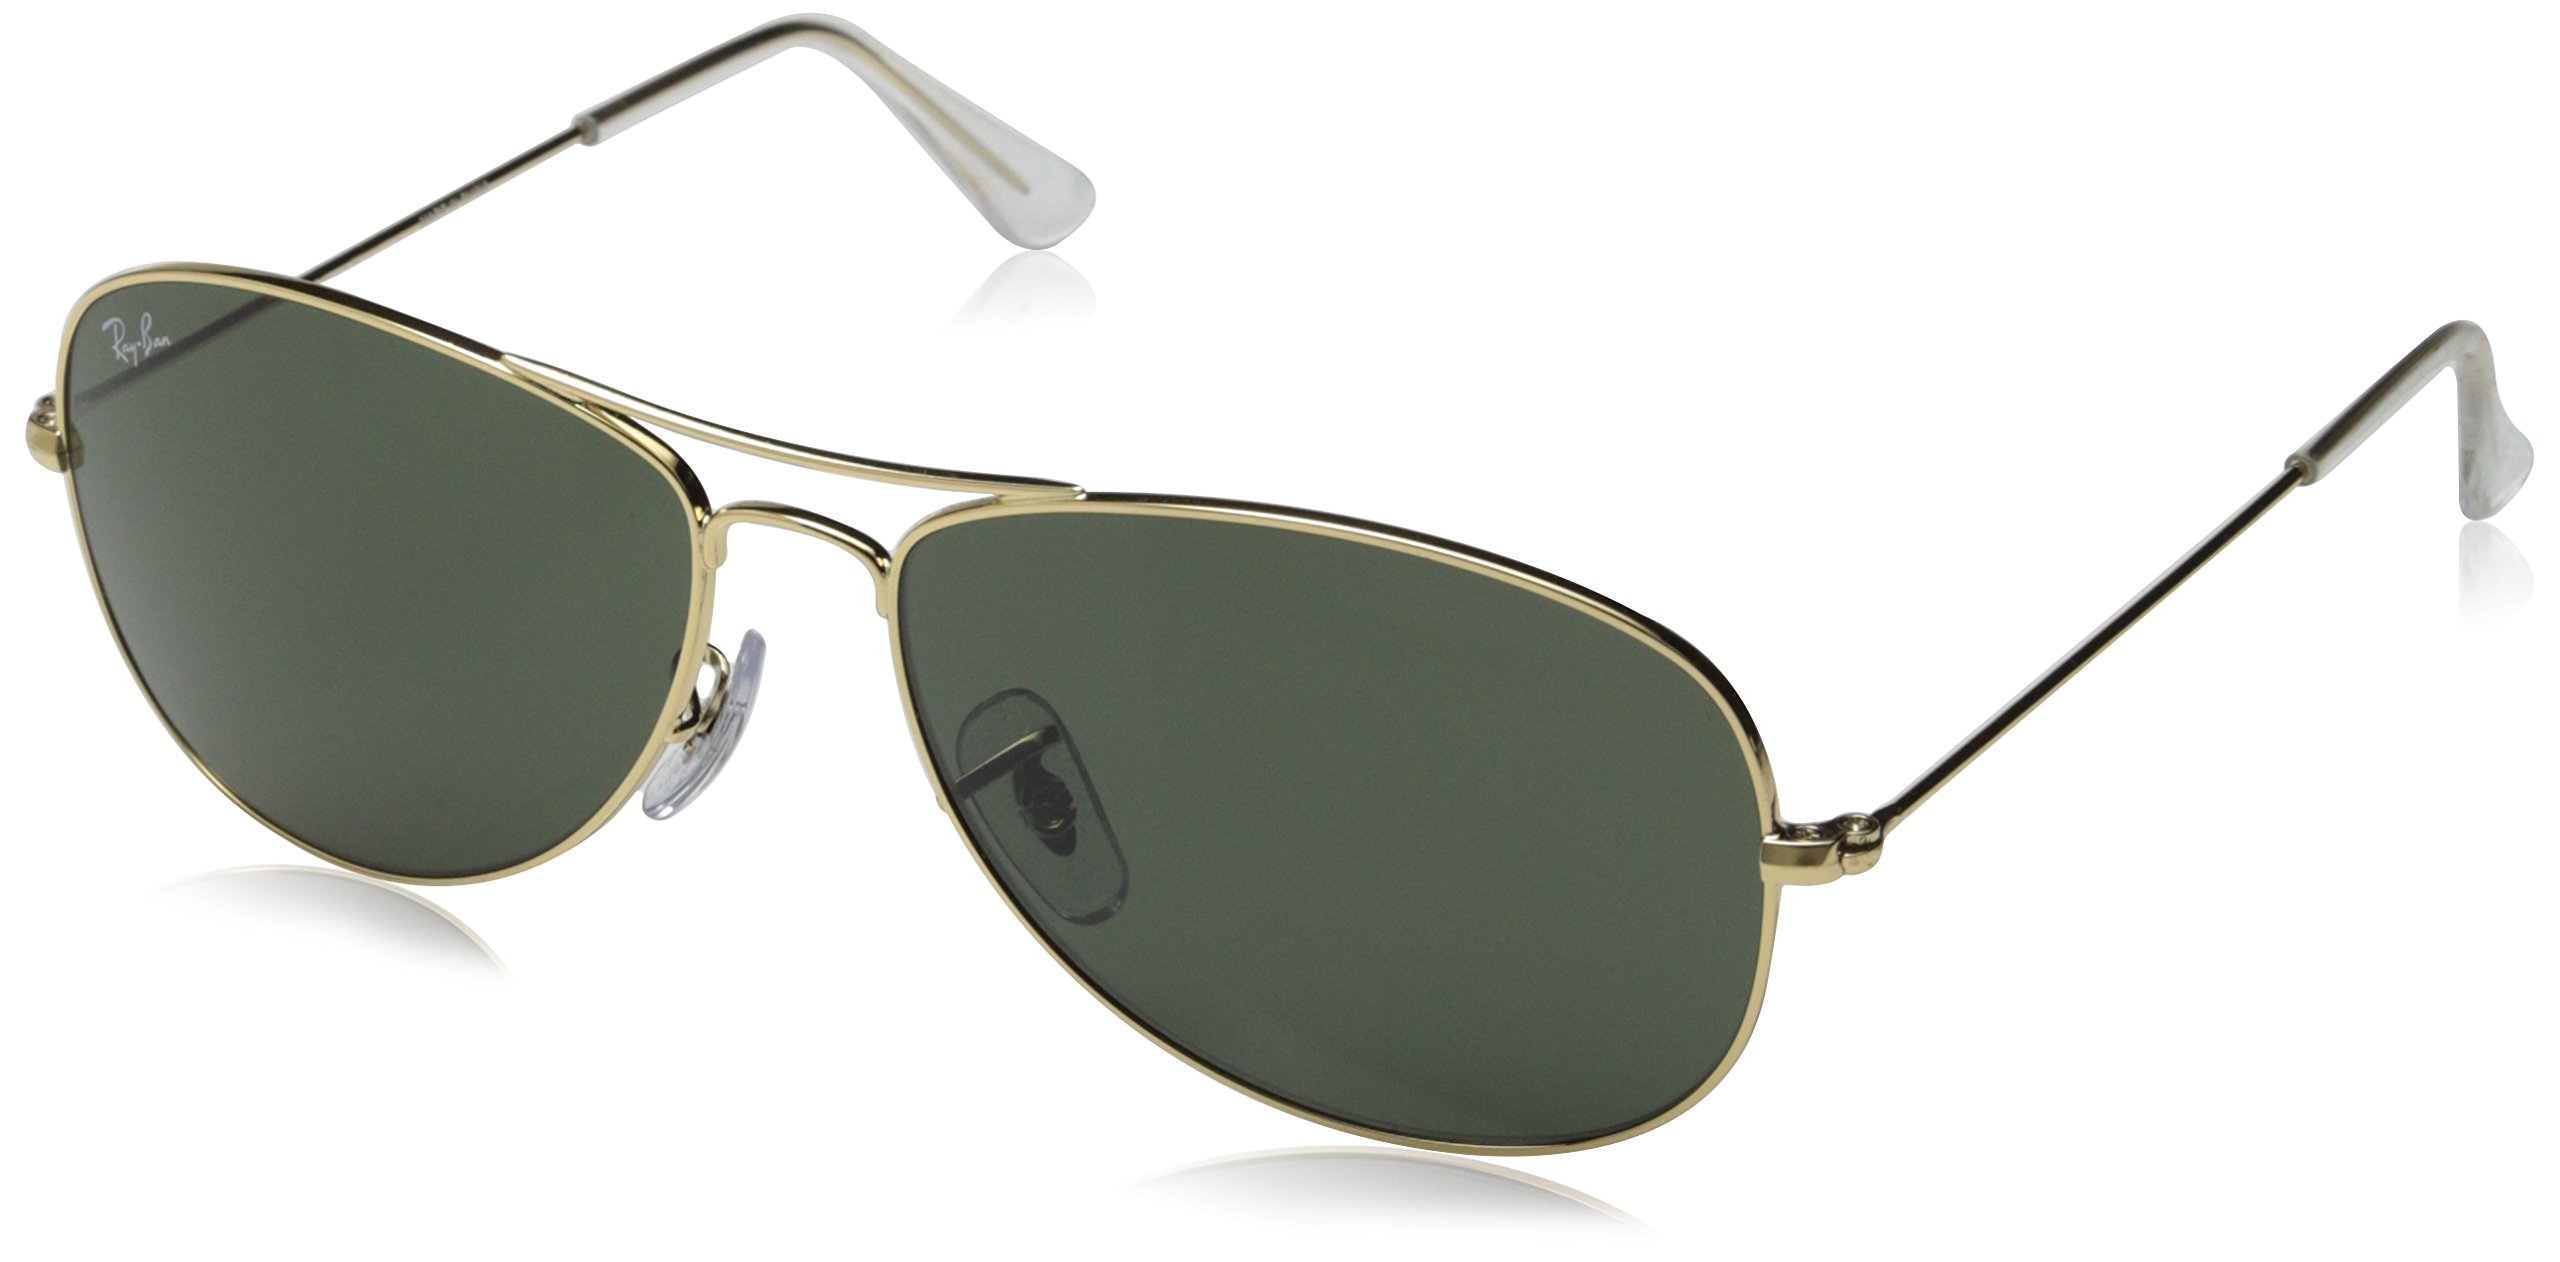 Ray-Ban Cockpit Sunglasses Arista/Crystal Green, One Size